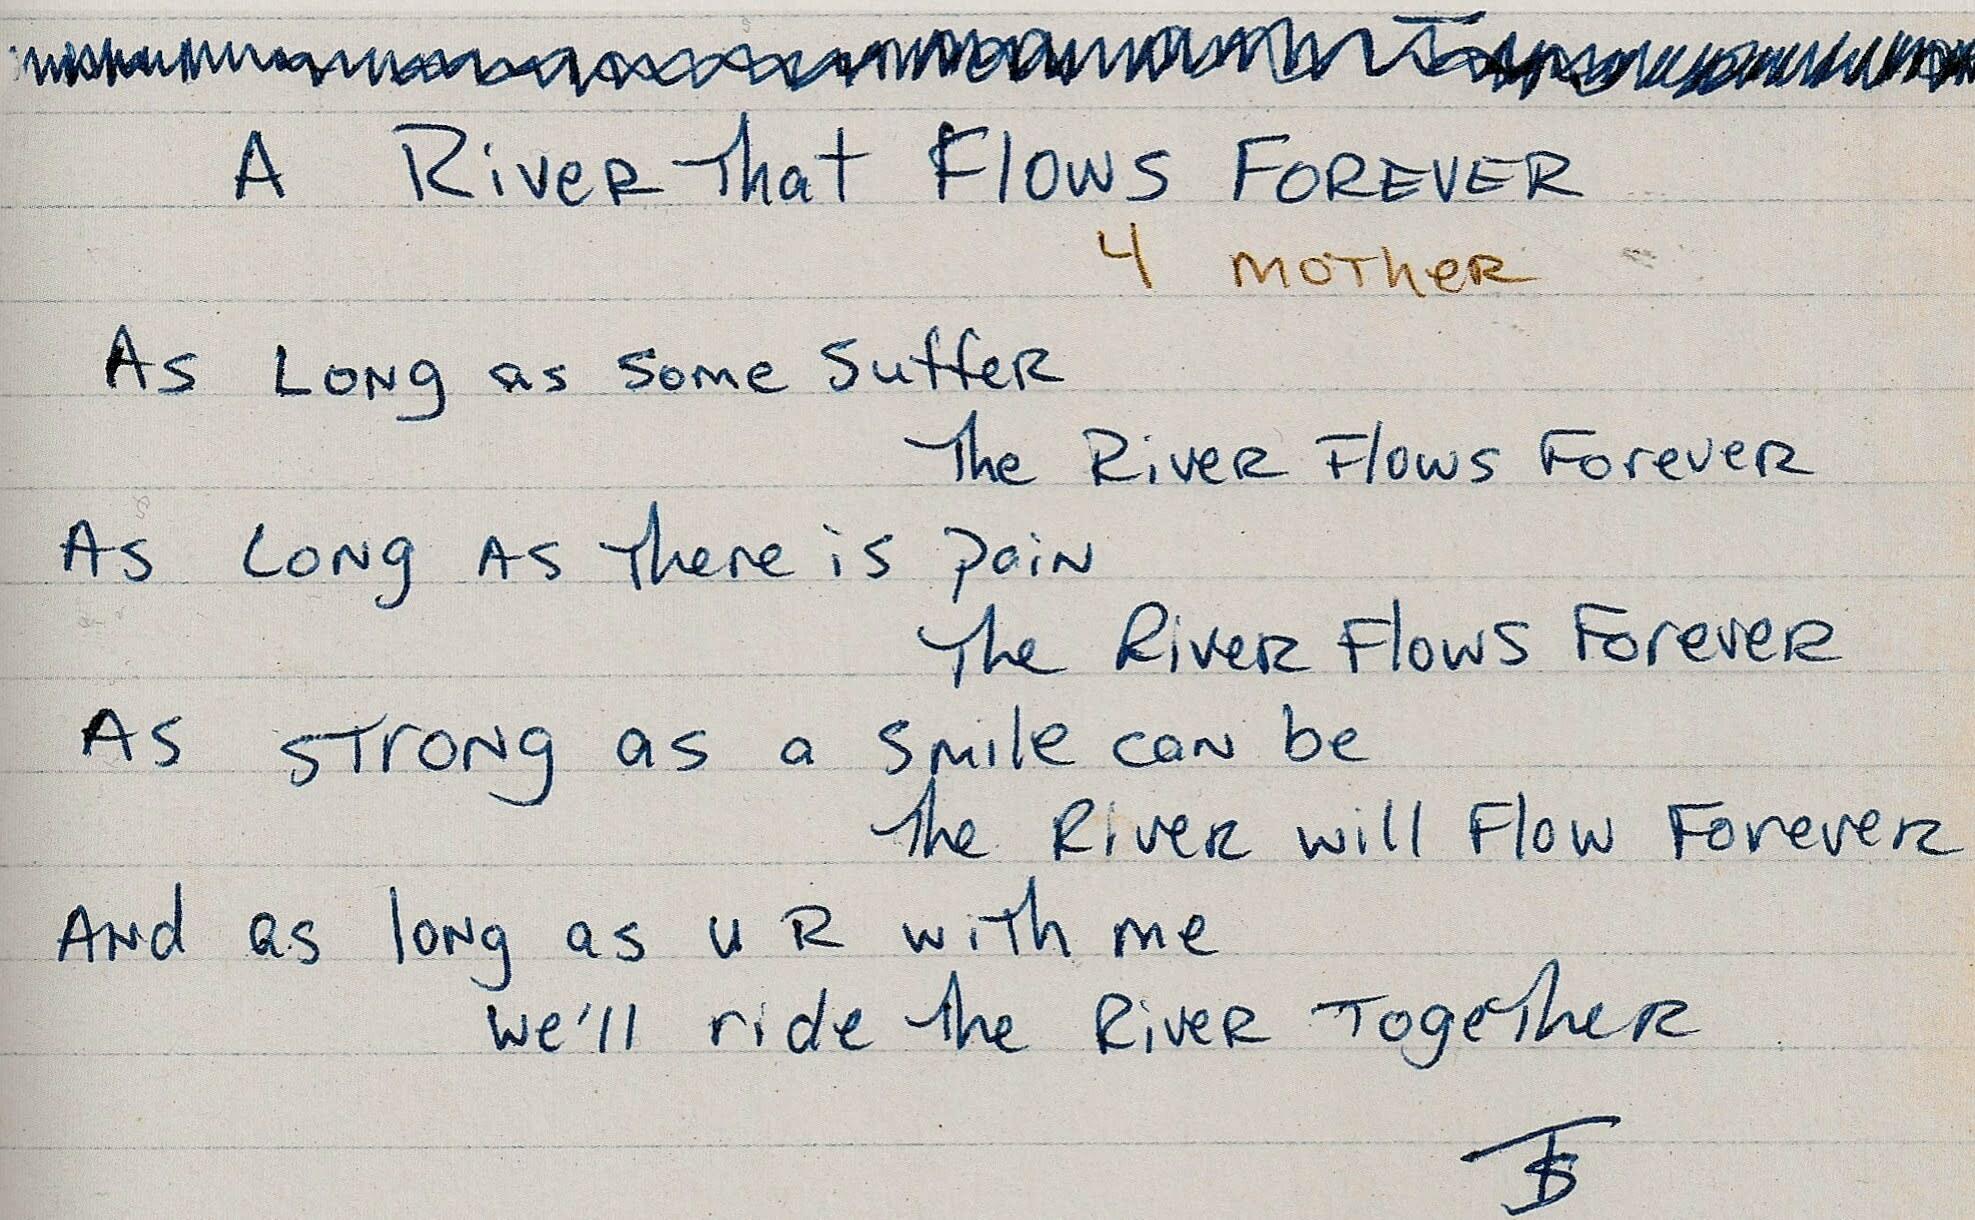 A River That Flows Forever (4 Mother) - Tupac's Handwritten Poem